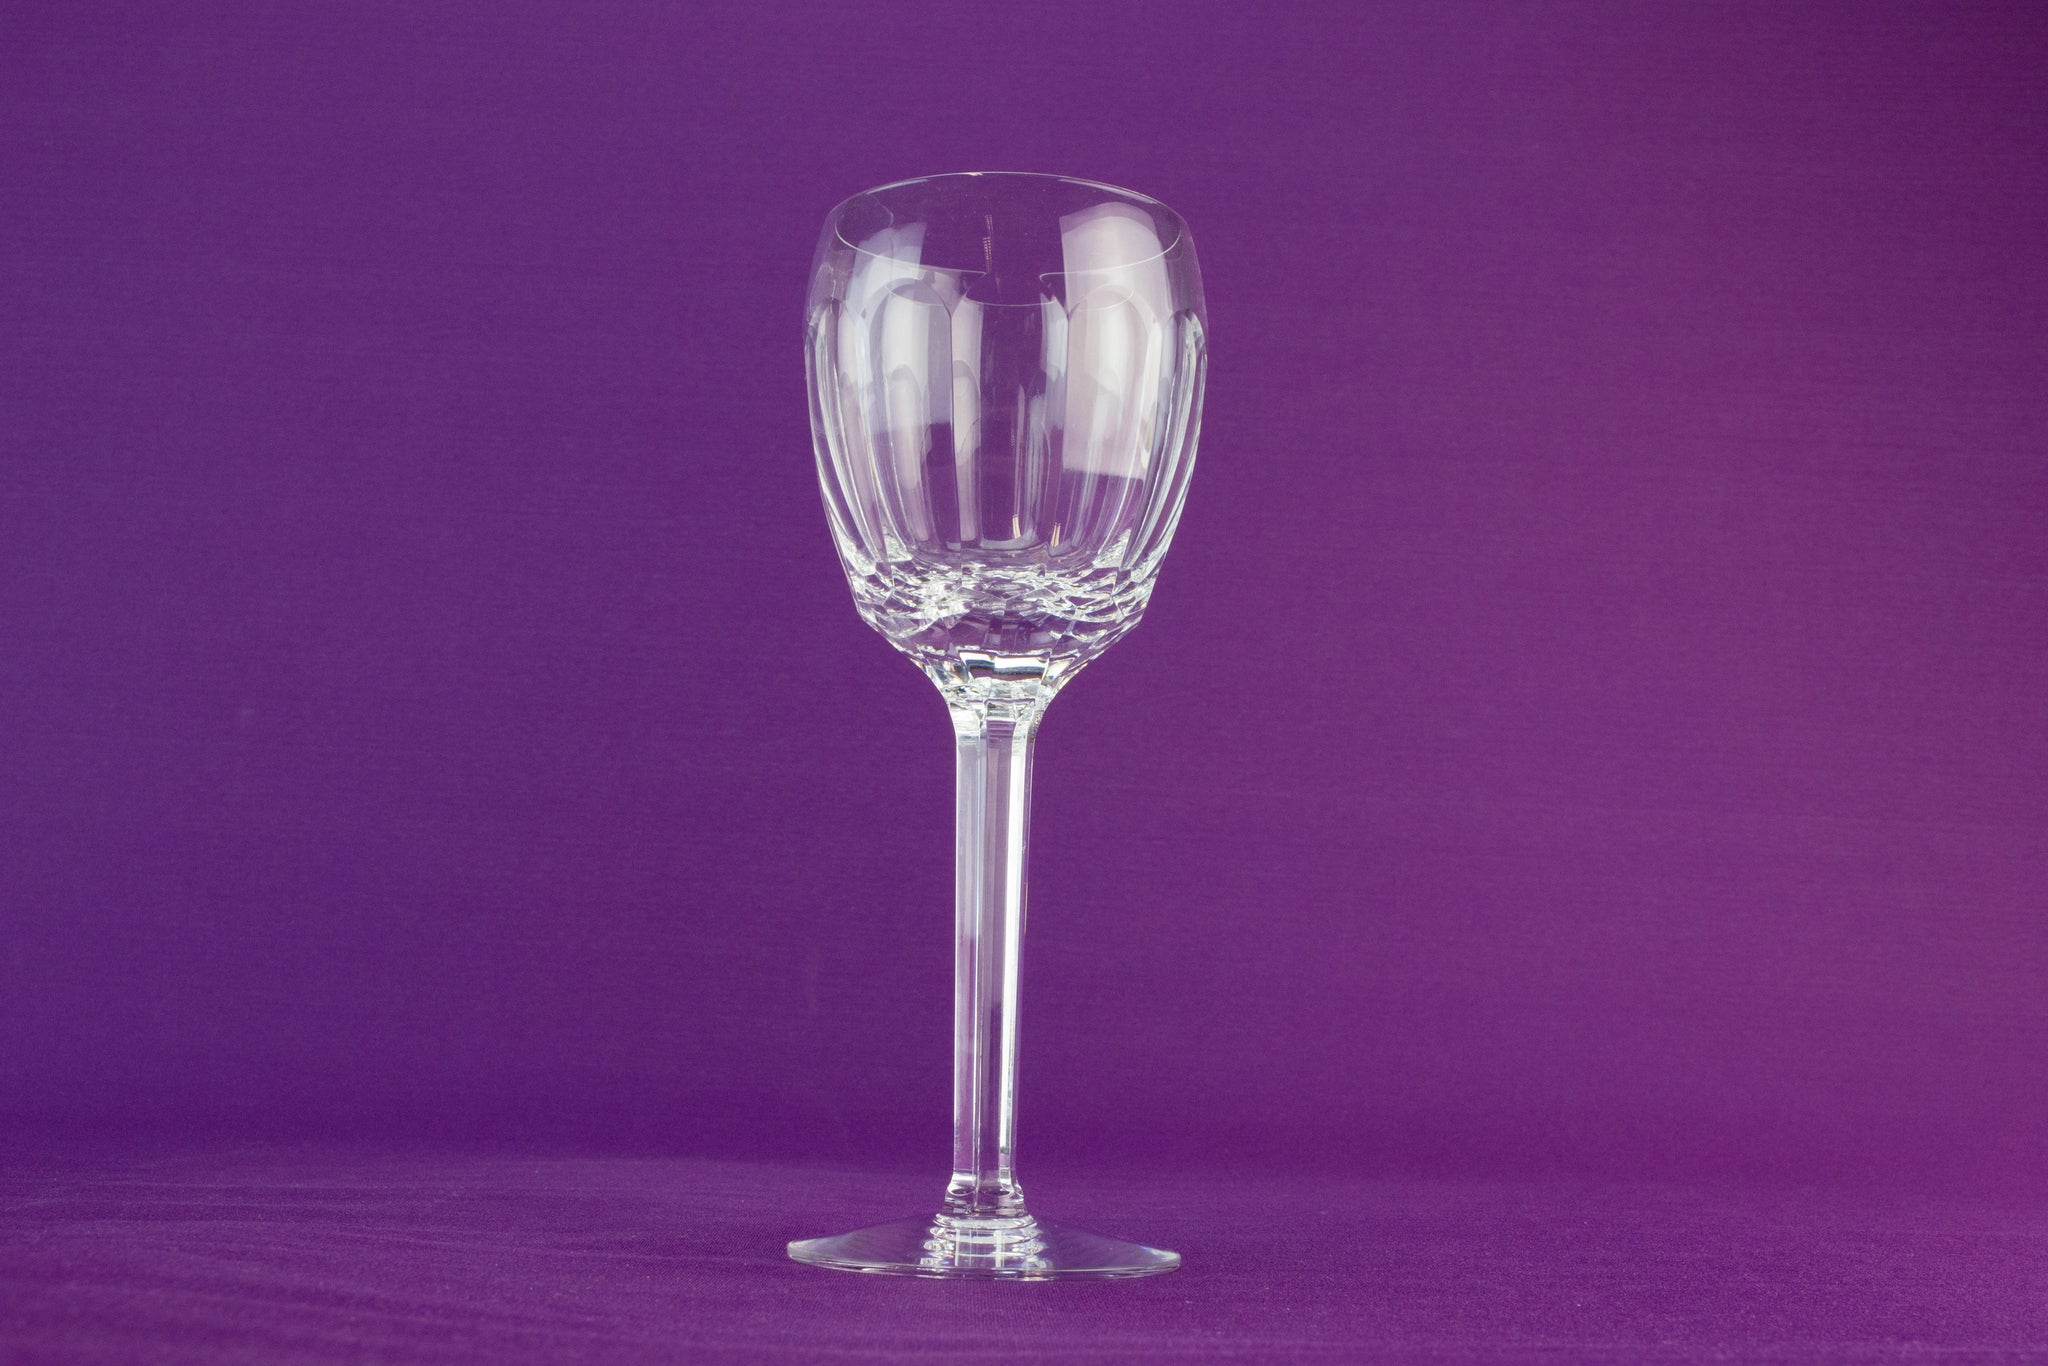 6 hock wine glasses by Tyrone by Lavish Shoestring